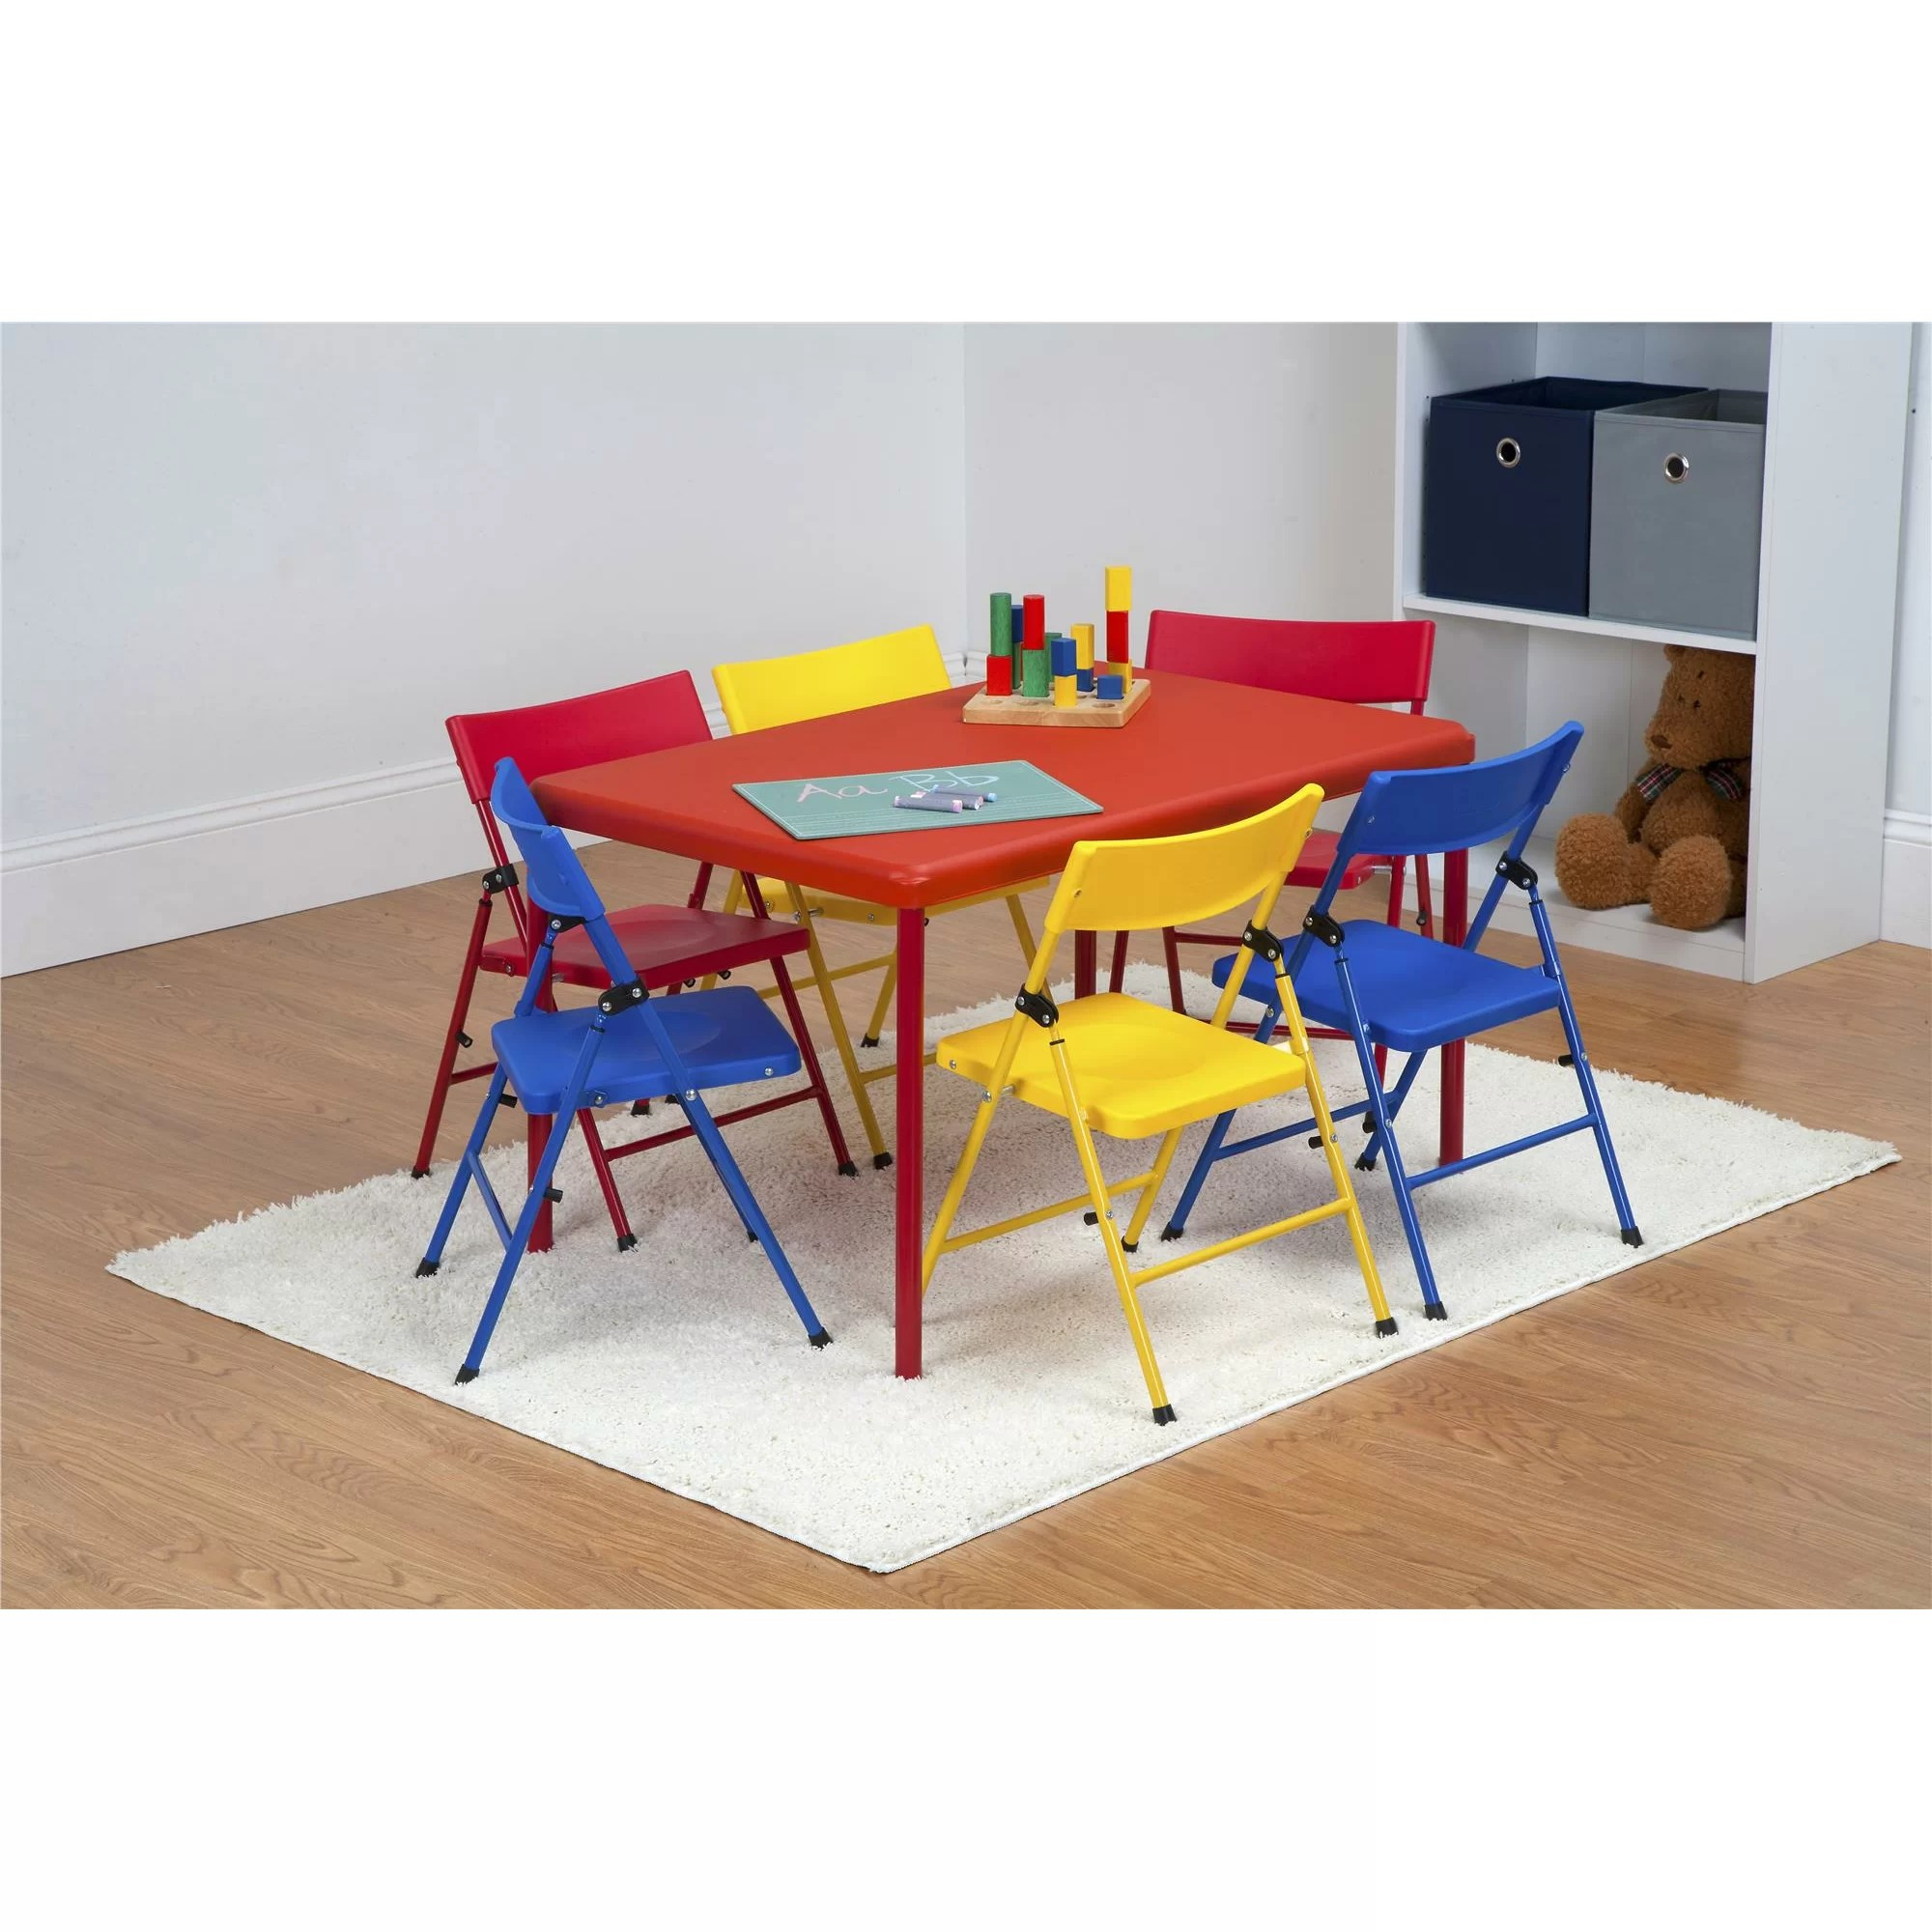 Child's Table And Chairs Zoomie Kids Adrian Kids 7 Piece Rectangular Table And